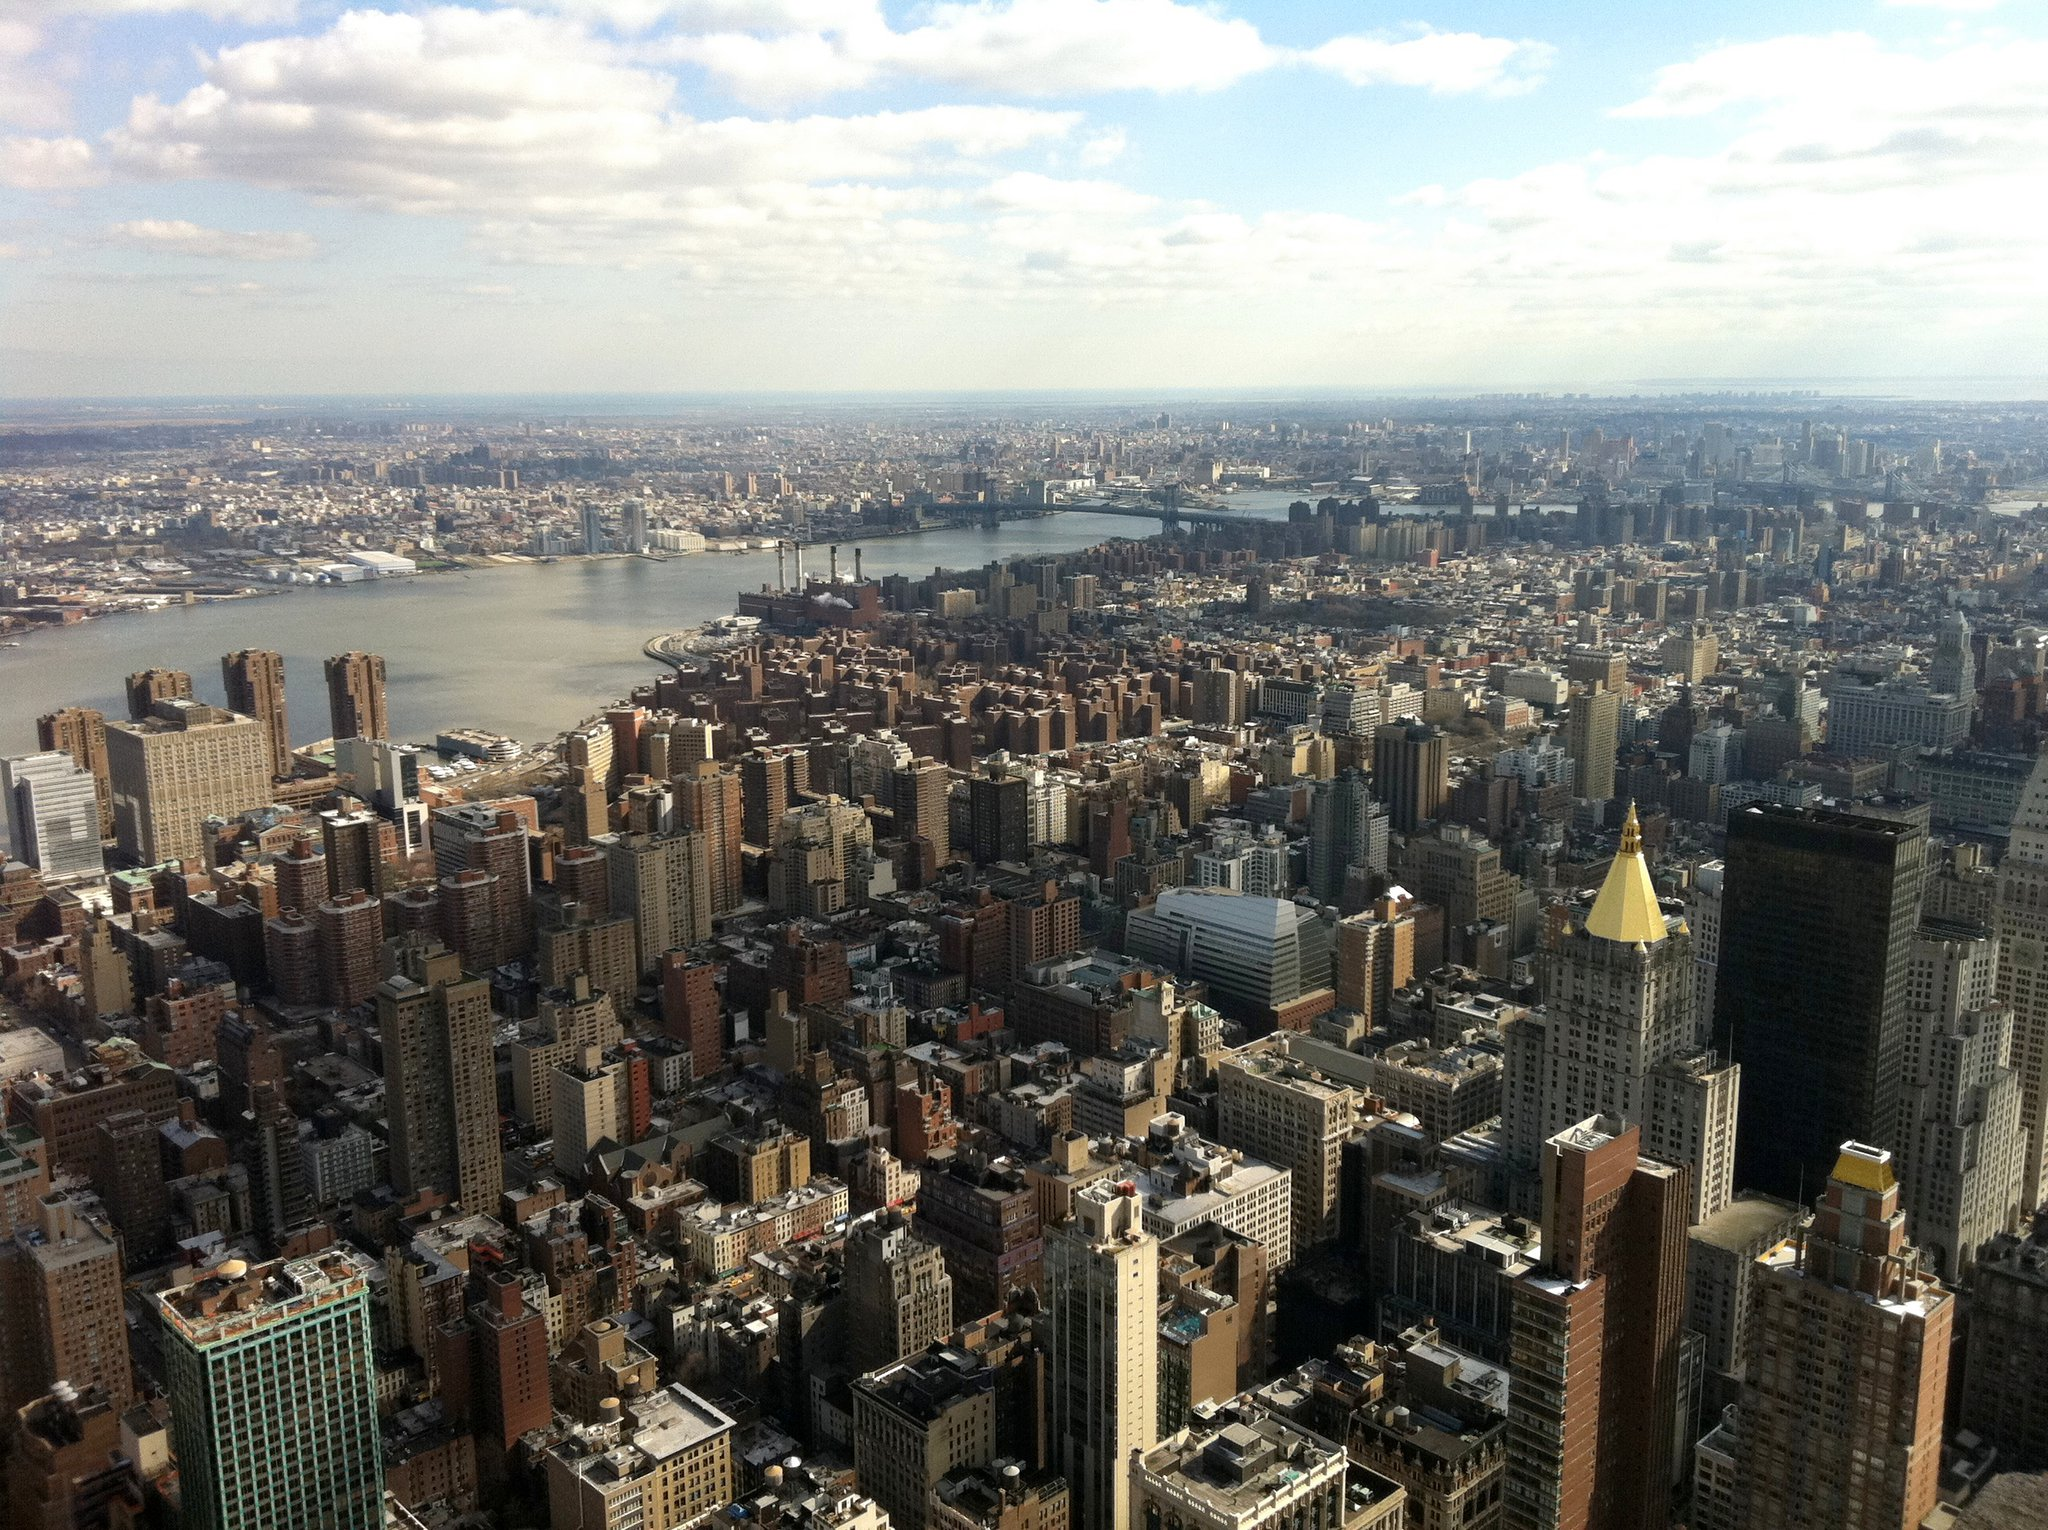 Top of the Empire State Building. Getting to the top in NYC was not easy.